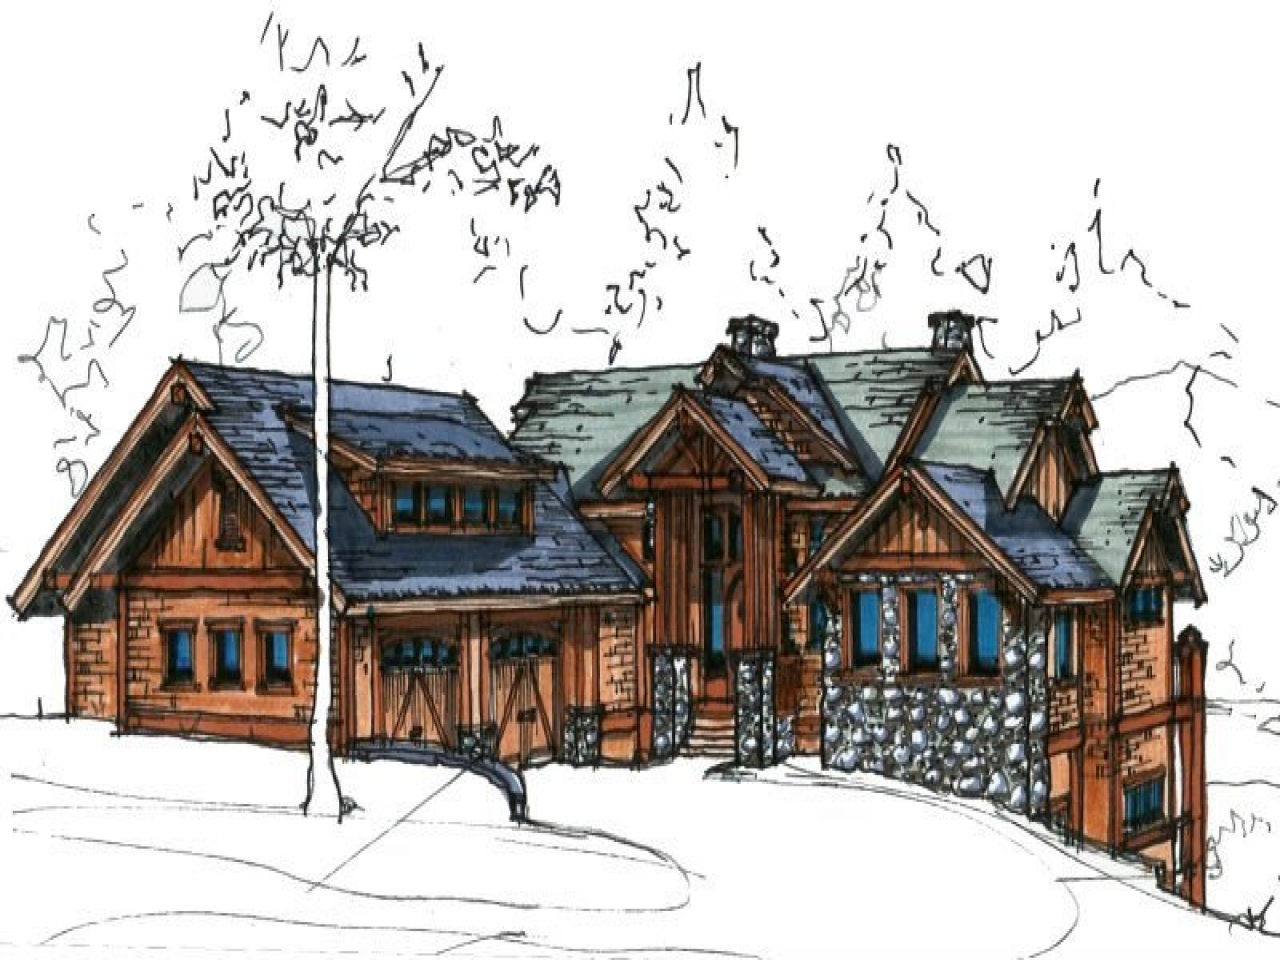 Best craftsman house plans craftsman home plans arts for Arts and crafts house plans